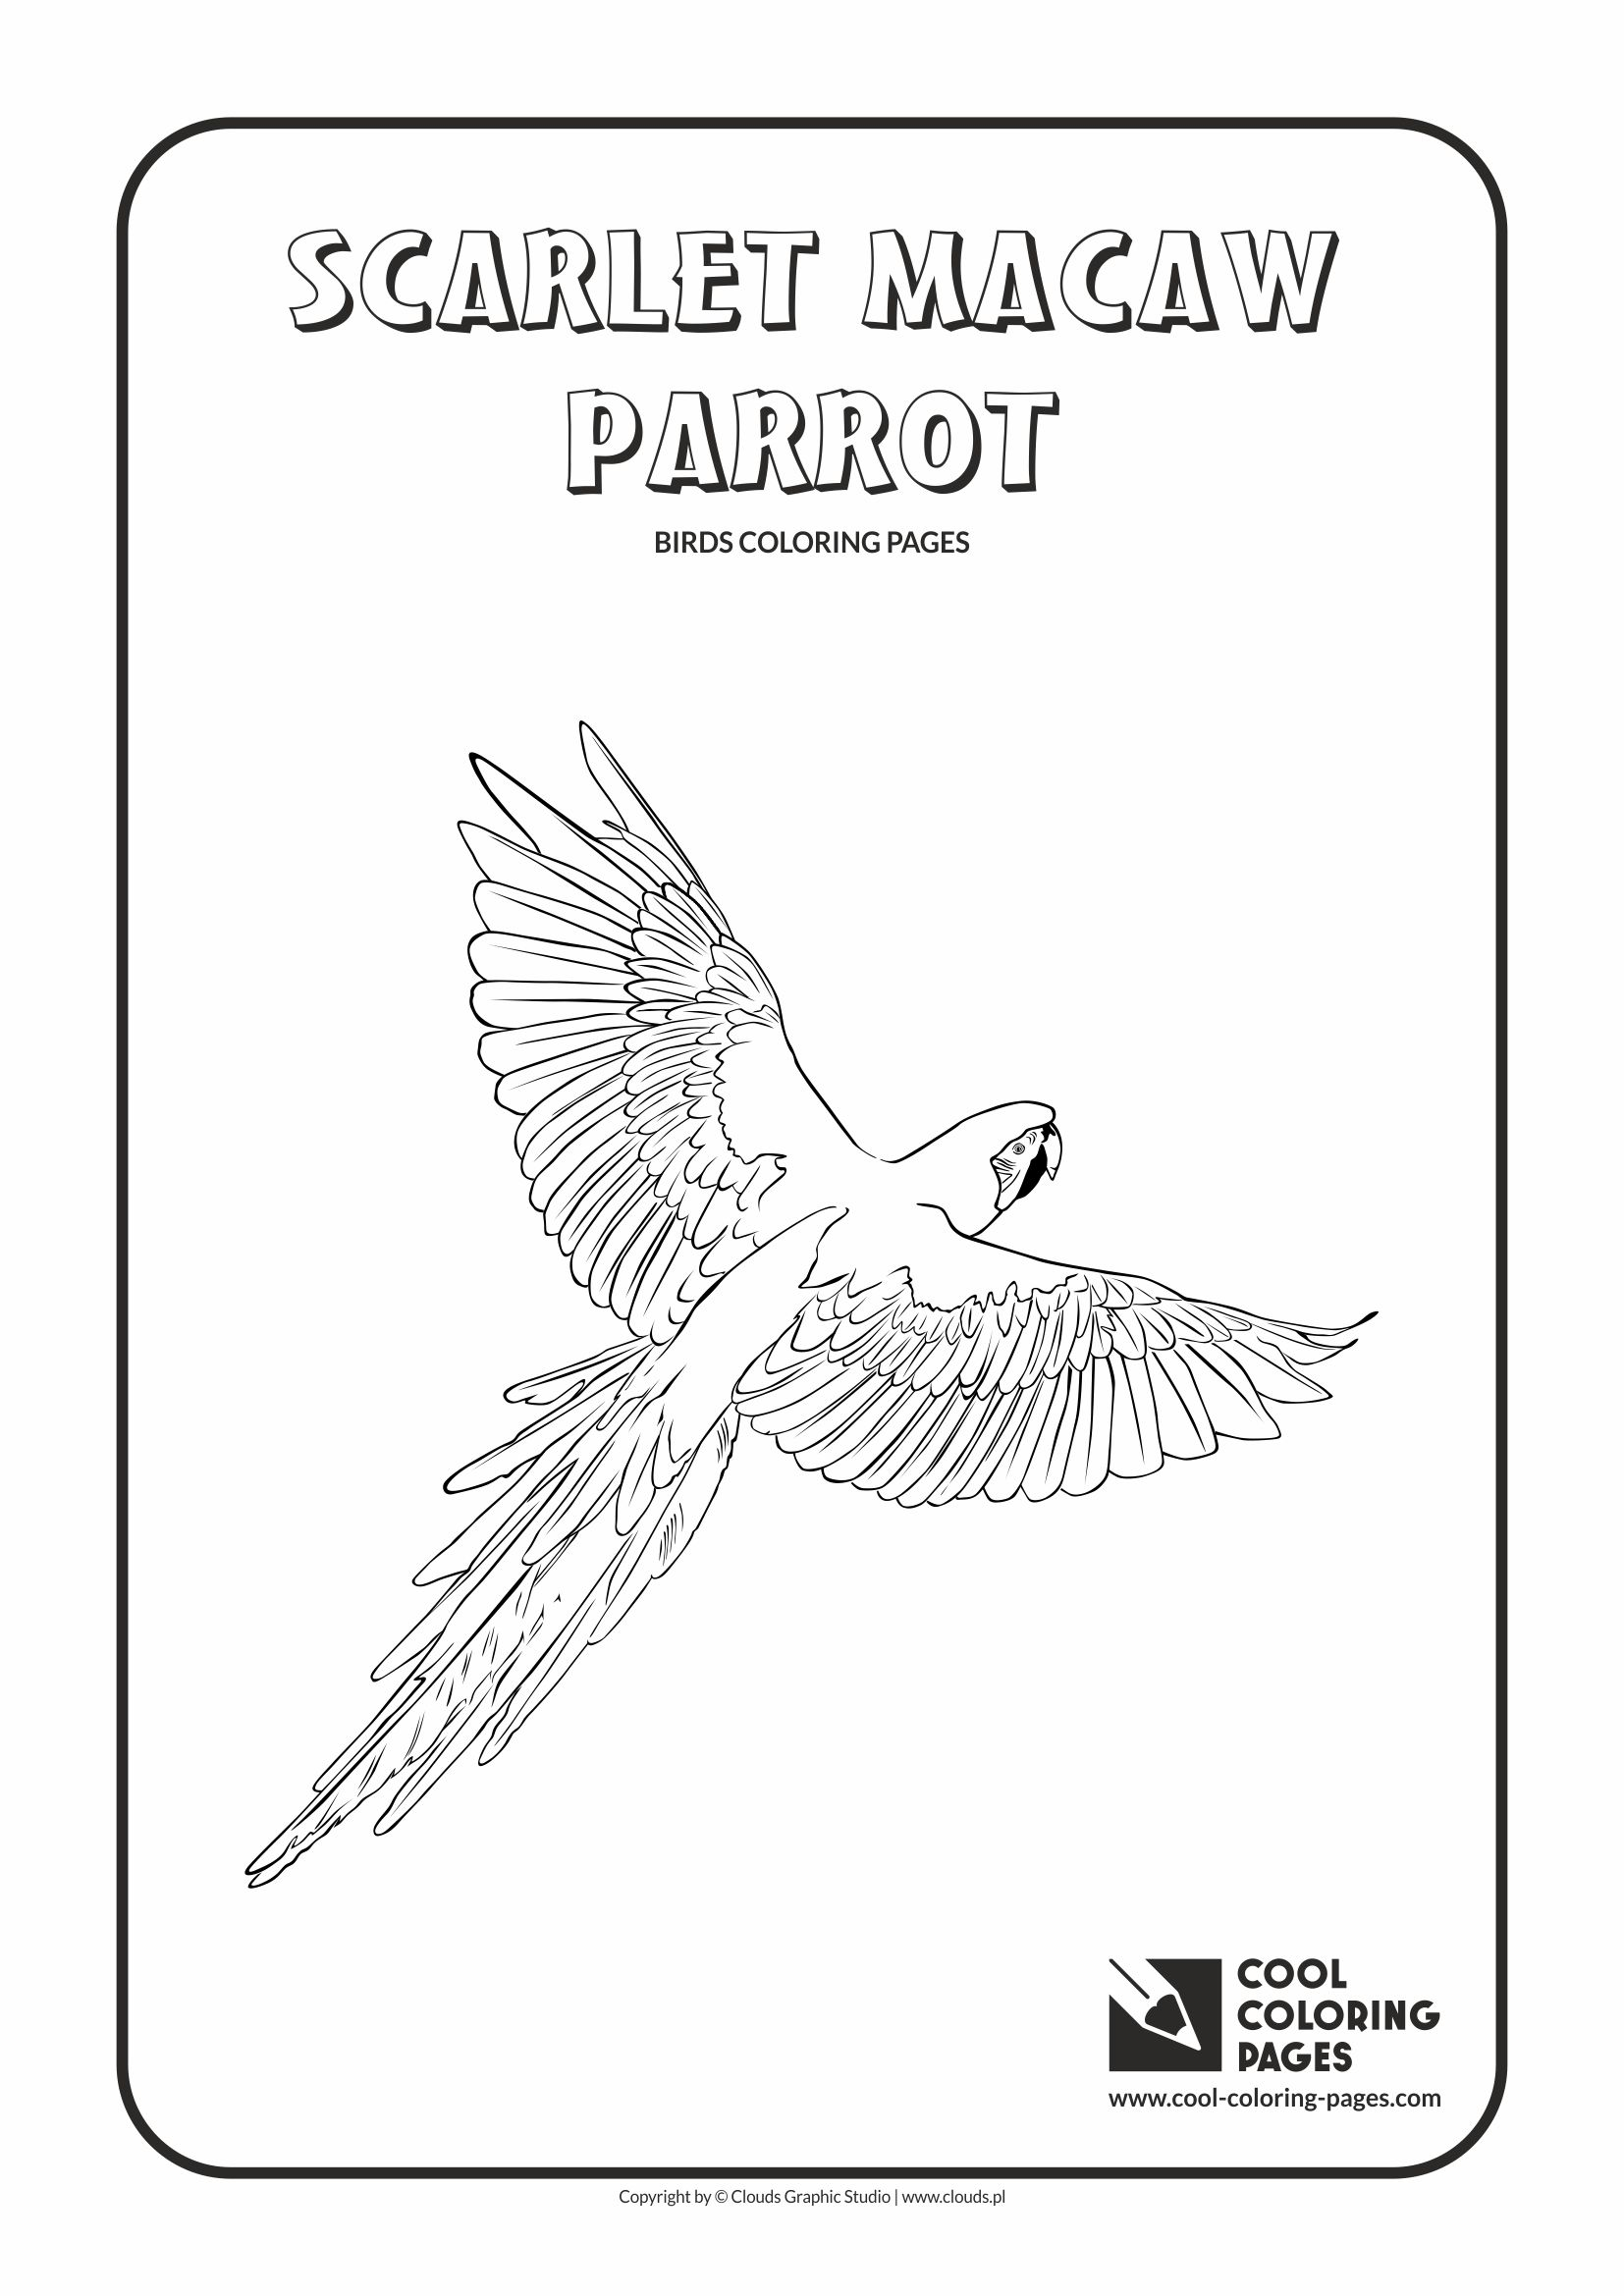 Cool Coloring Pages - Animals / Scarlet macaw parrot / Coloring page with scarlet macaw parrot